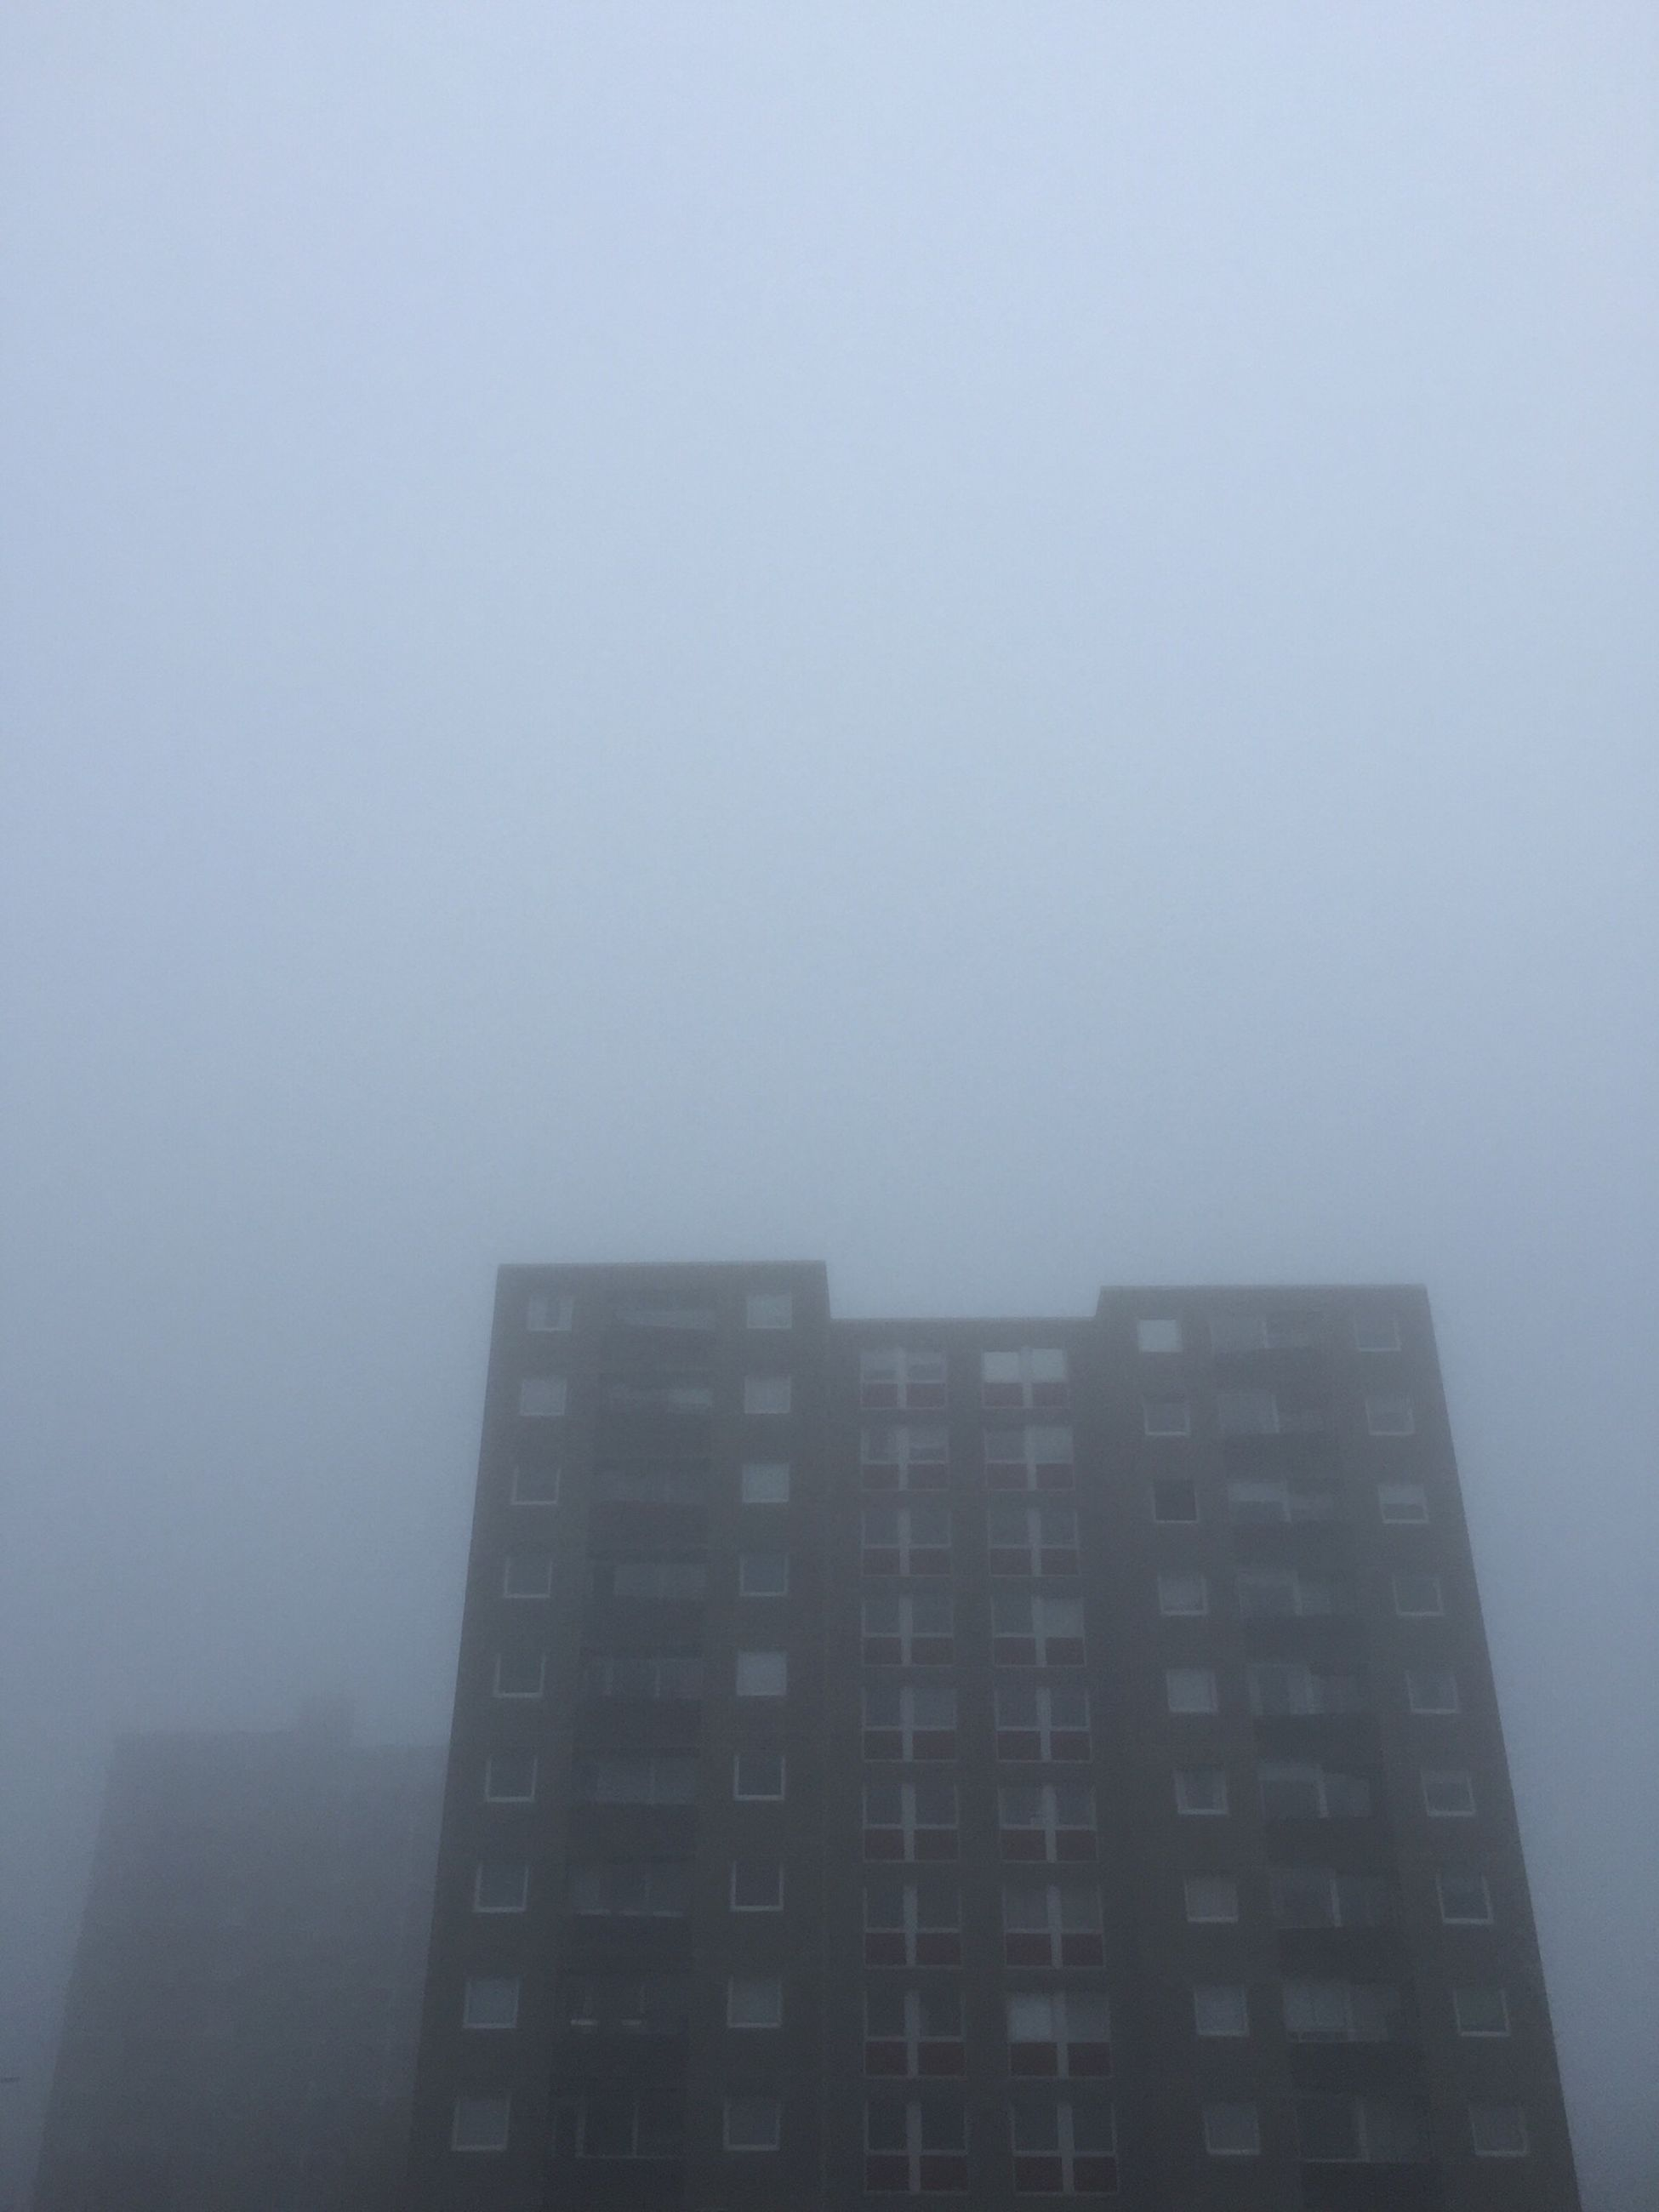 building exterior, architecture, built structure, fog, city, copy space, skyscraper, foggy, building, office building, tall - high, weather, modern, residential building, sky, residential structure, cityscape, day, no people